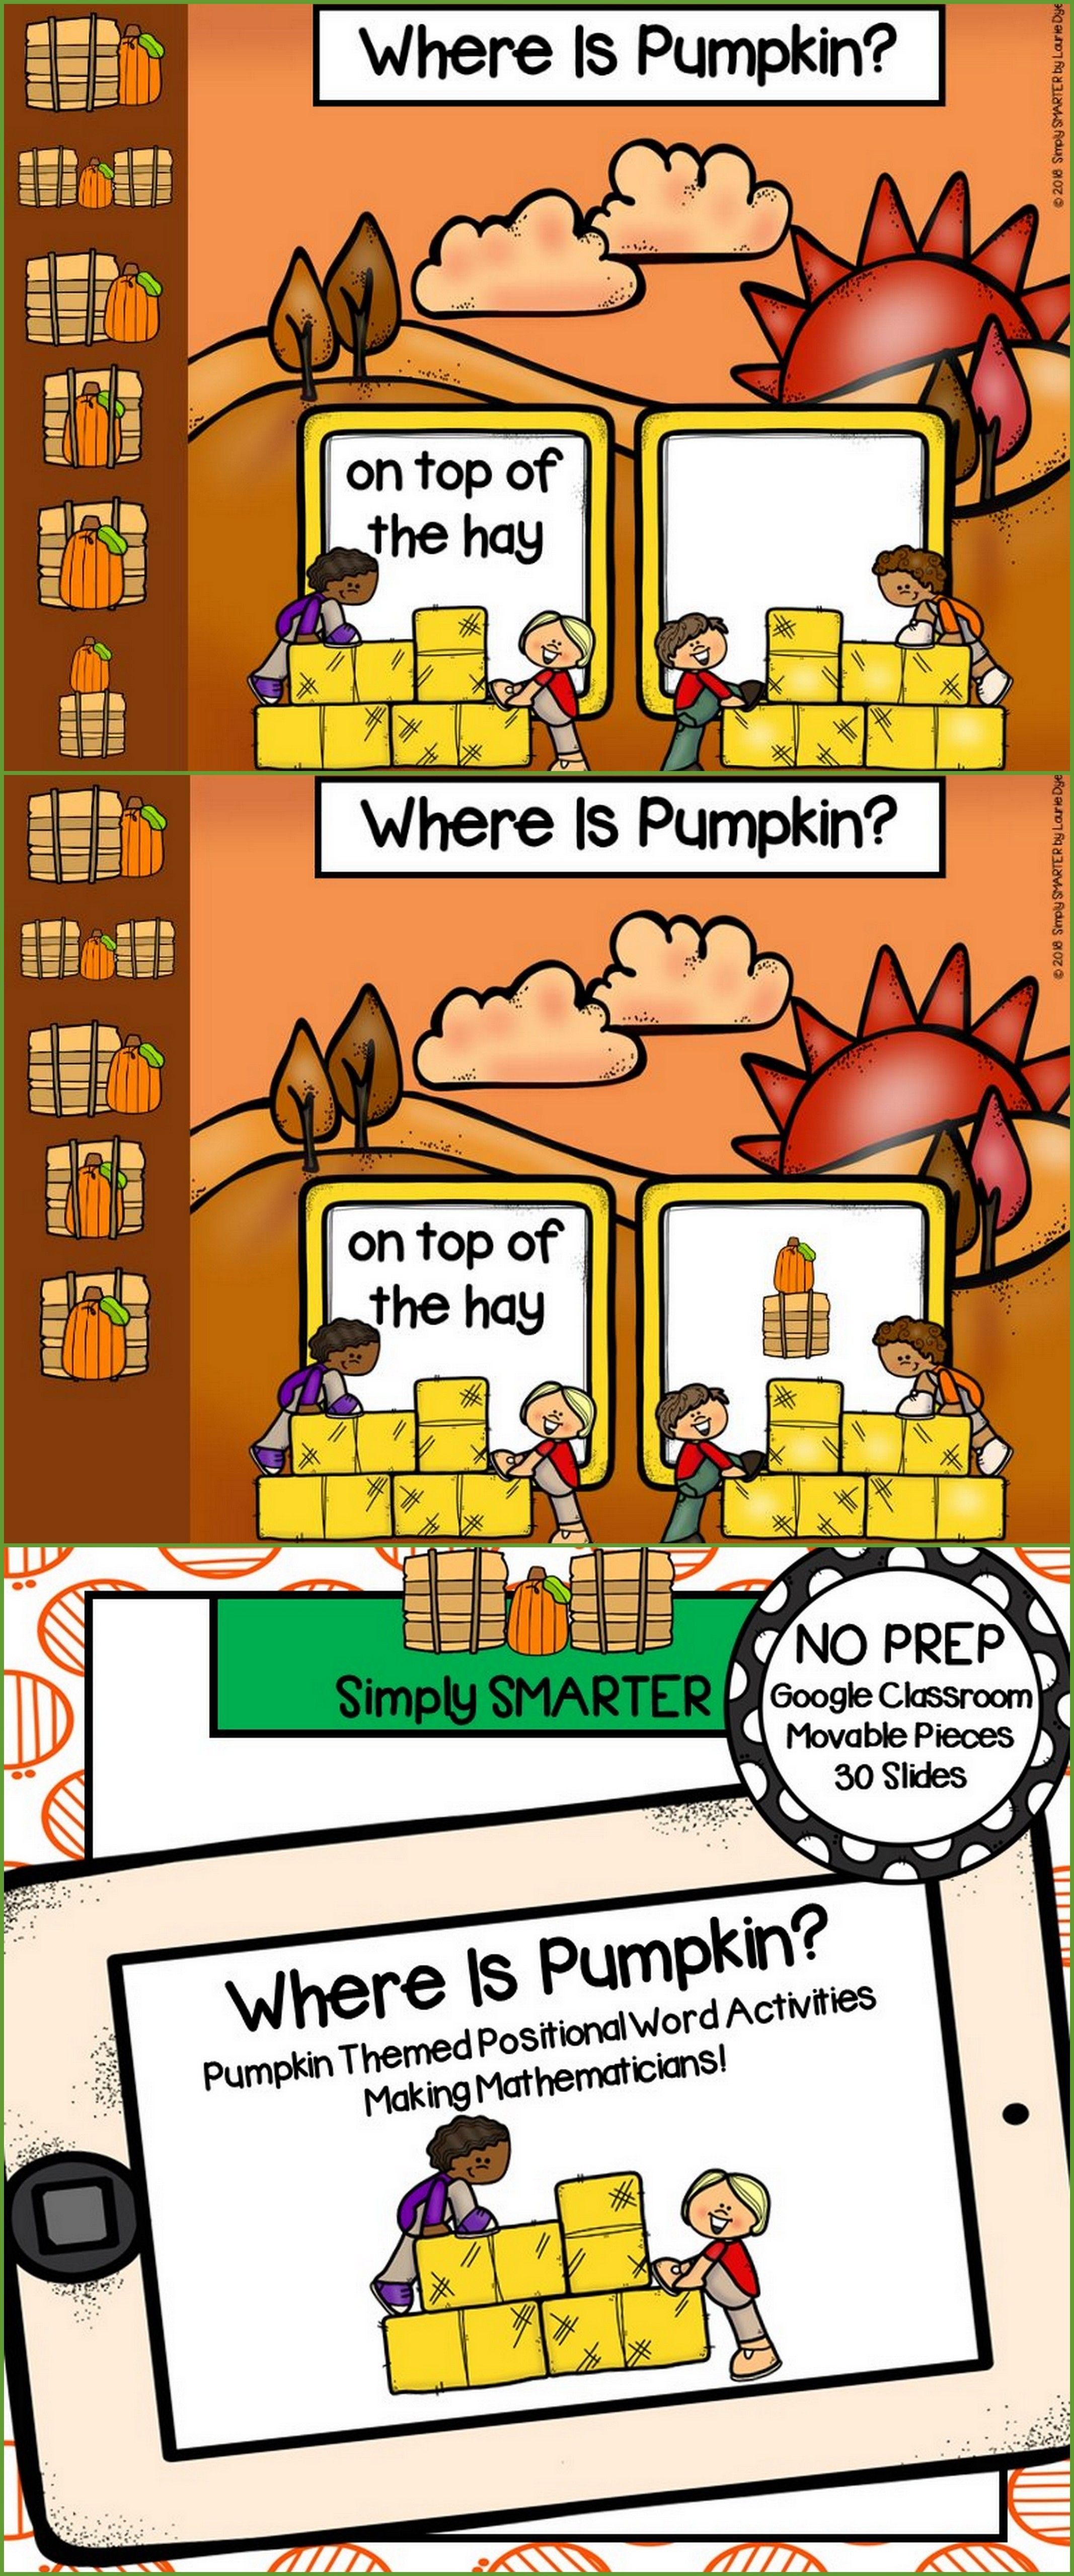 Pumpkin Themed Positional Word Activities For